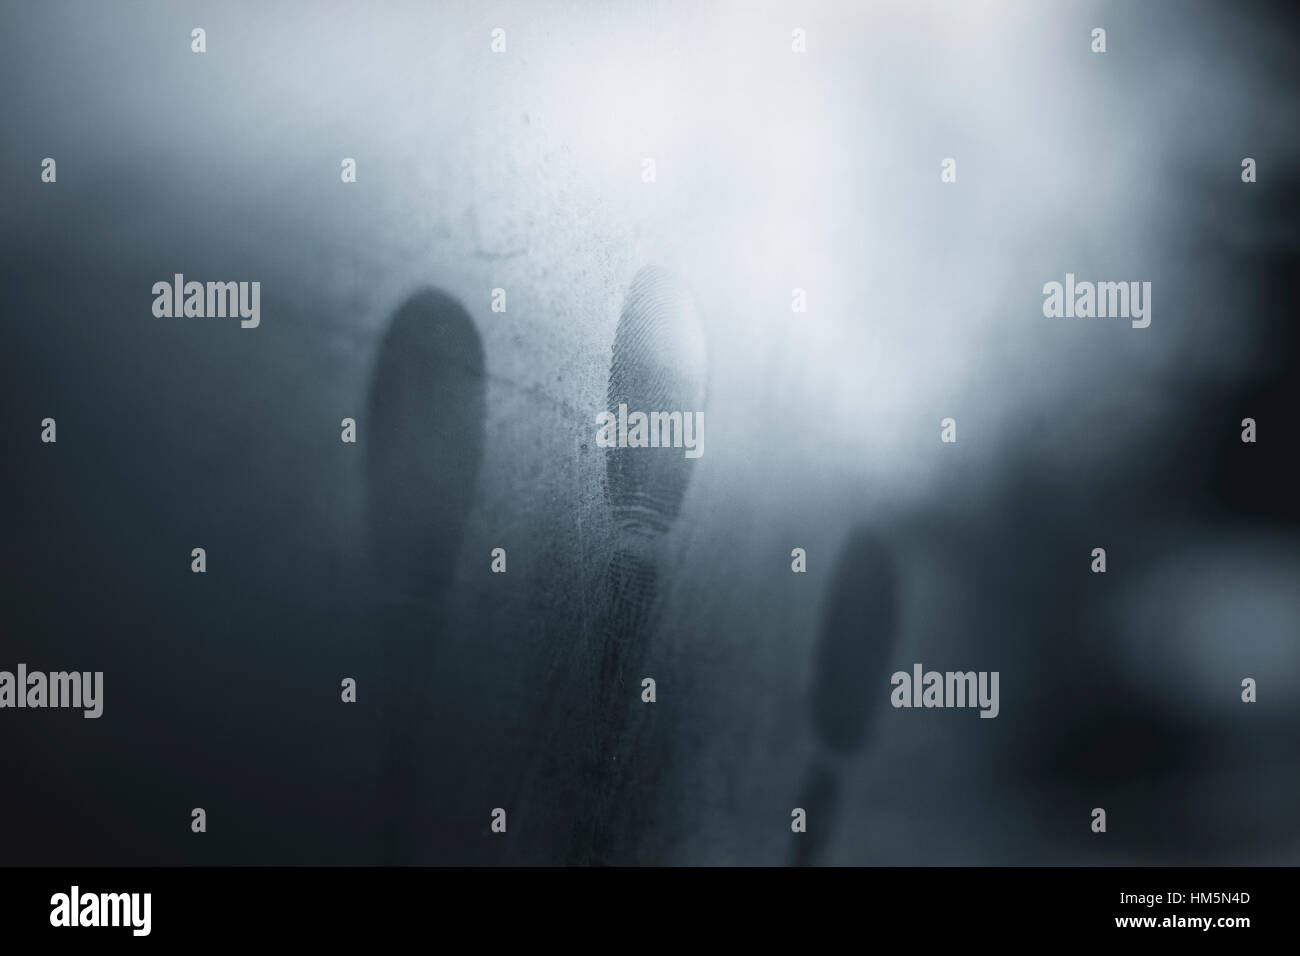 Close-up of fingerprints on condensed glass window - Stock Image